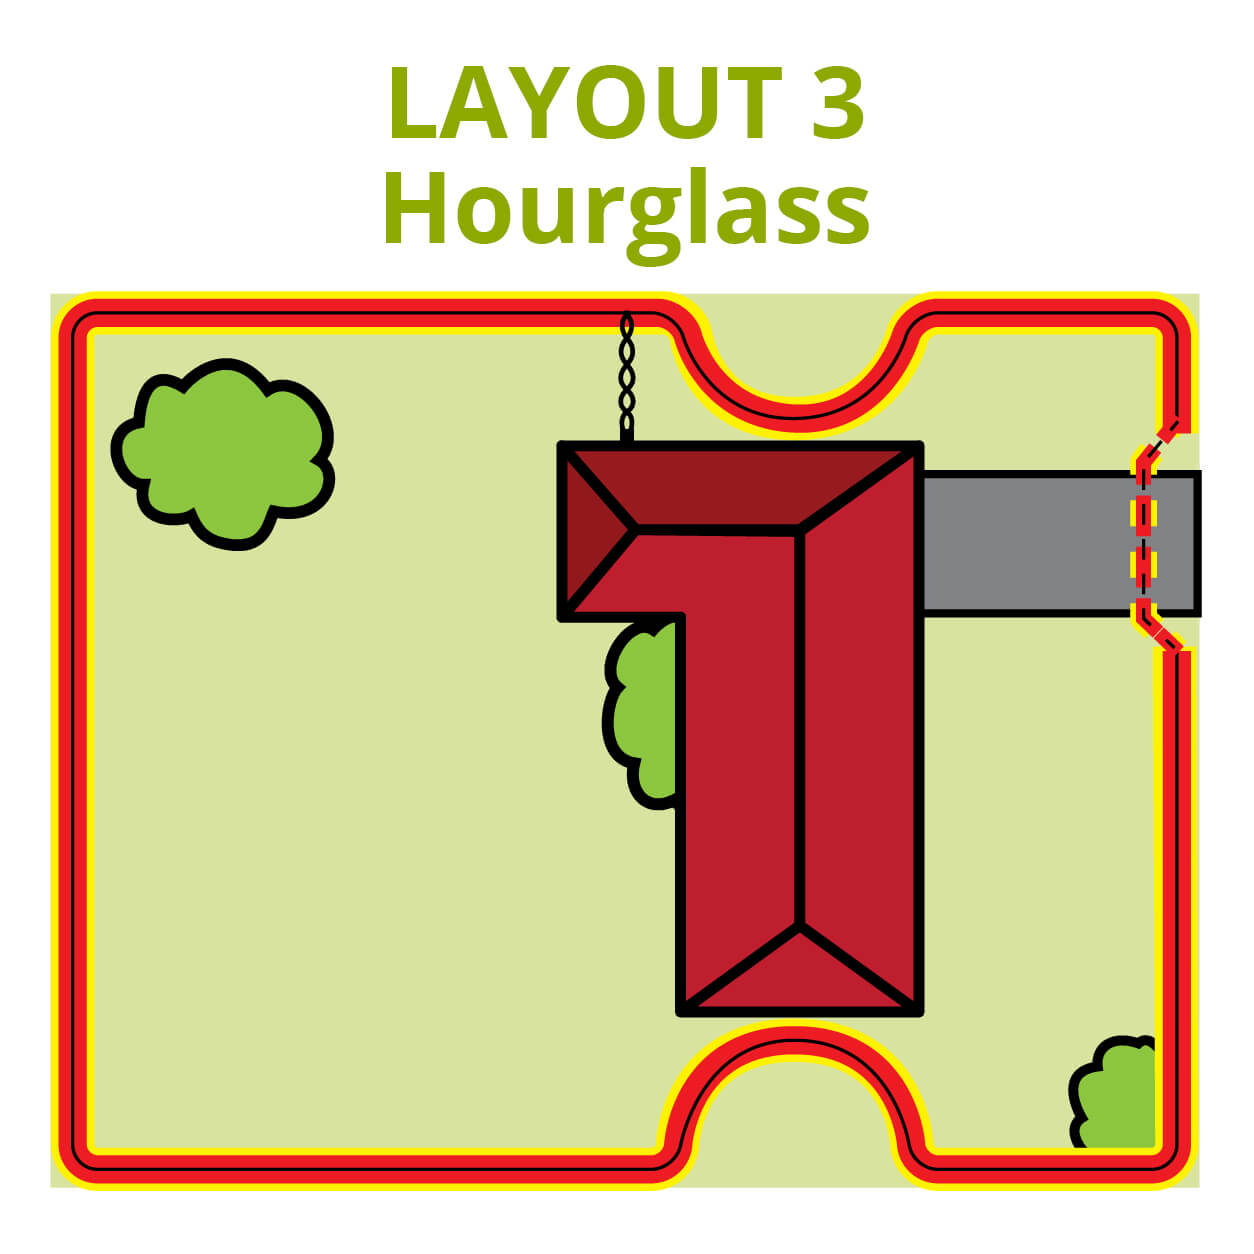 Dog Fence Hour Glass Layout